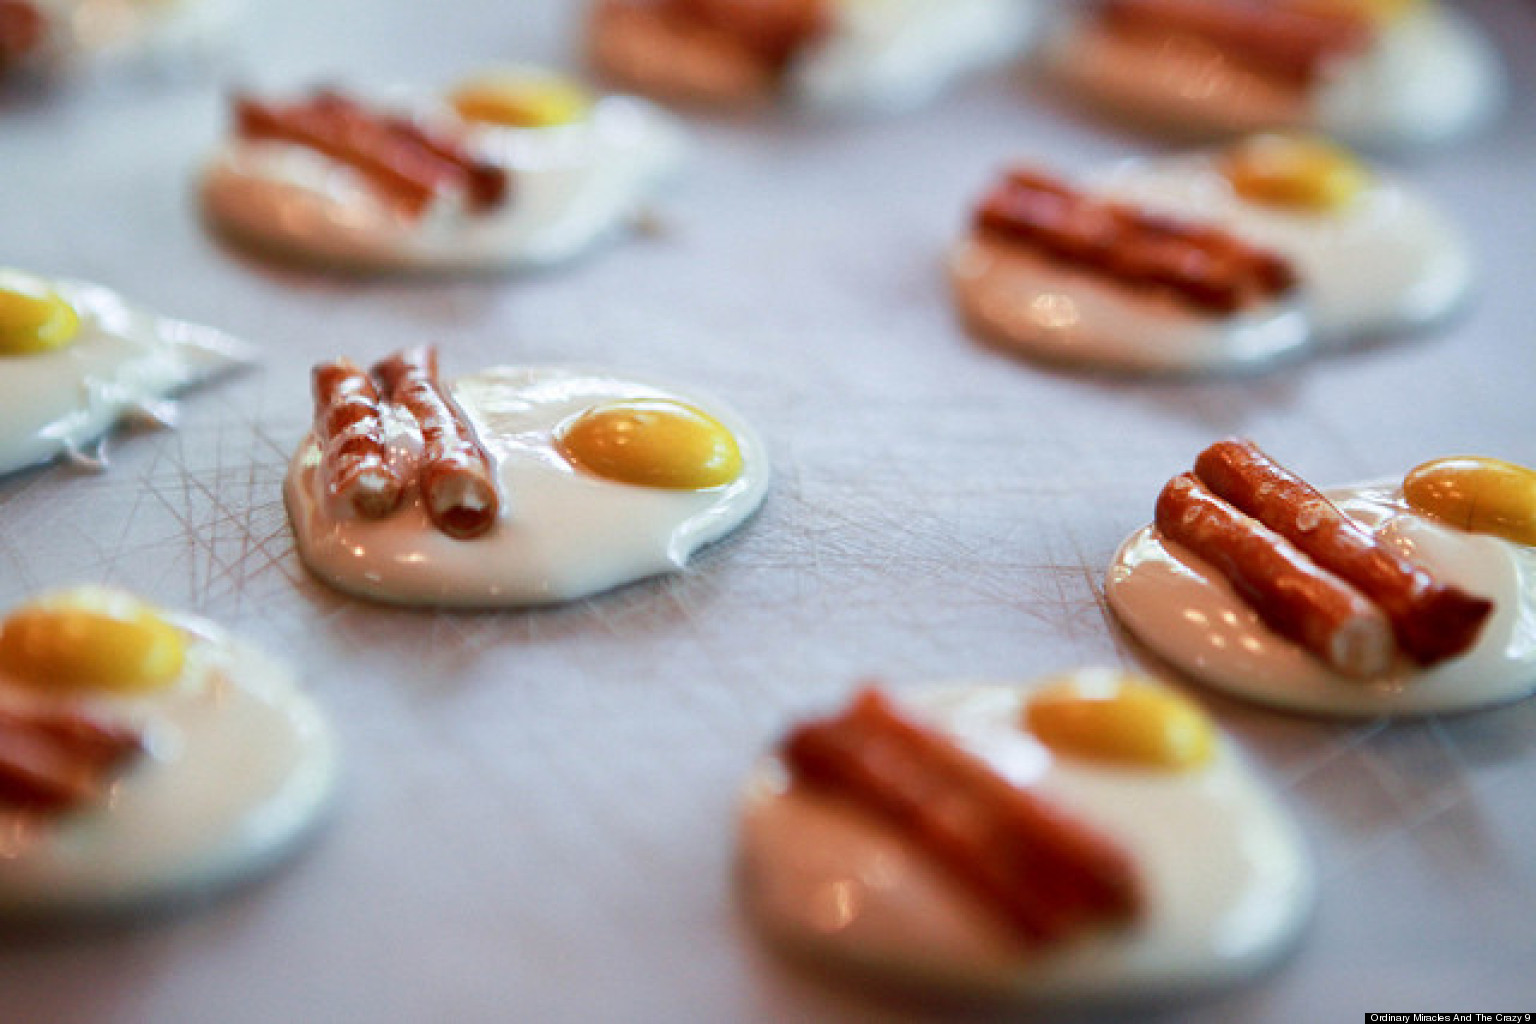 Bacon and eggs candy is adorable photo